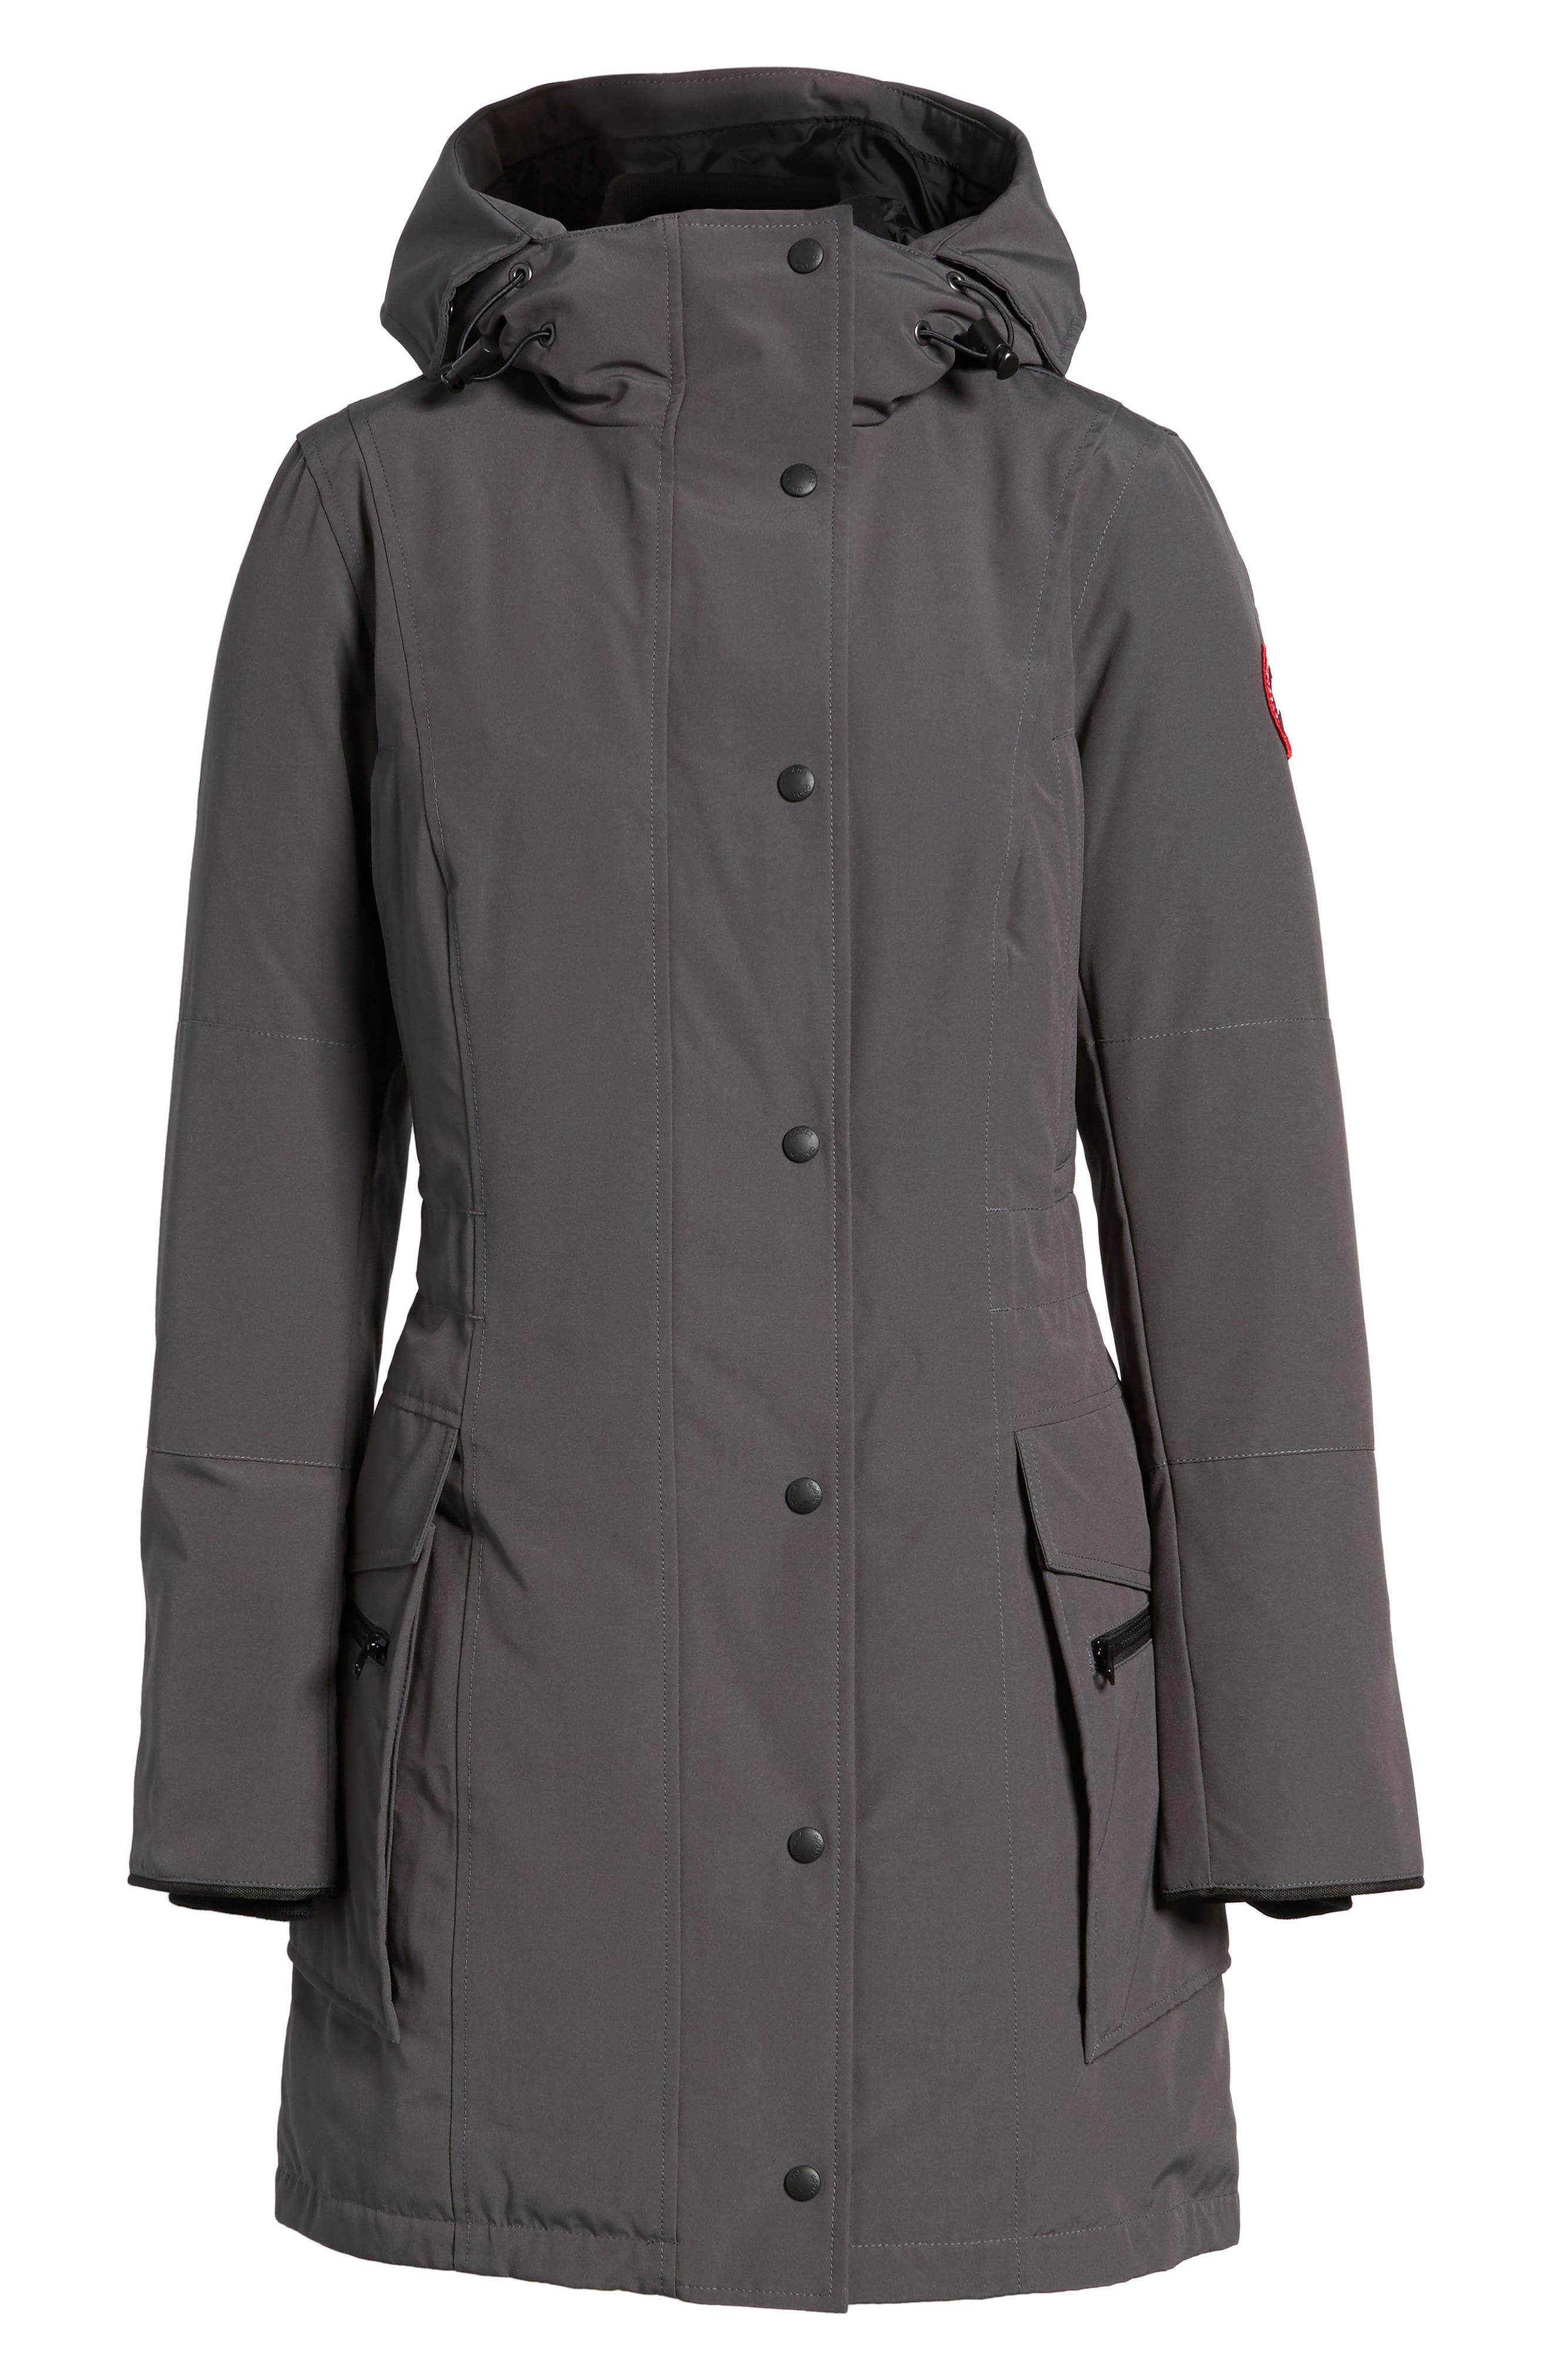 Kinley Insulated Parka,                             Alternate thumbnail 7, color,                             Graphite